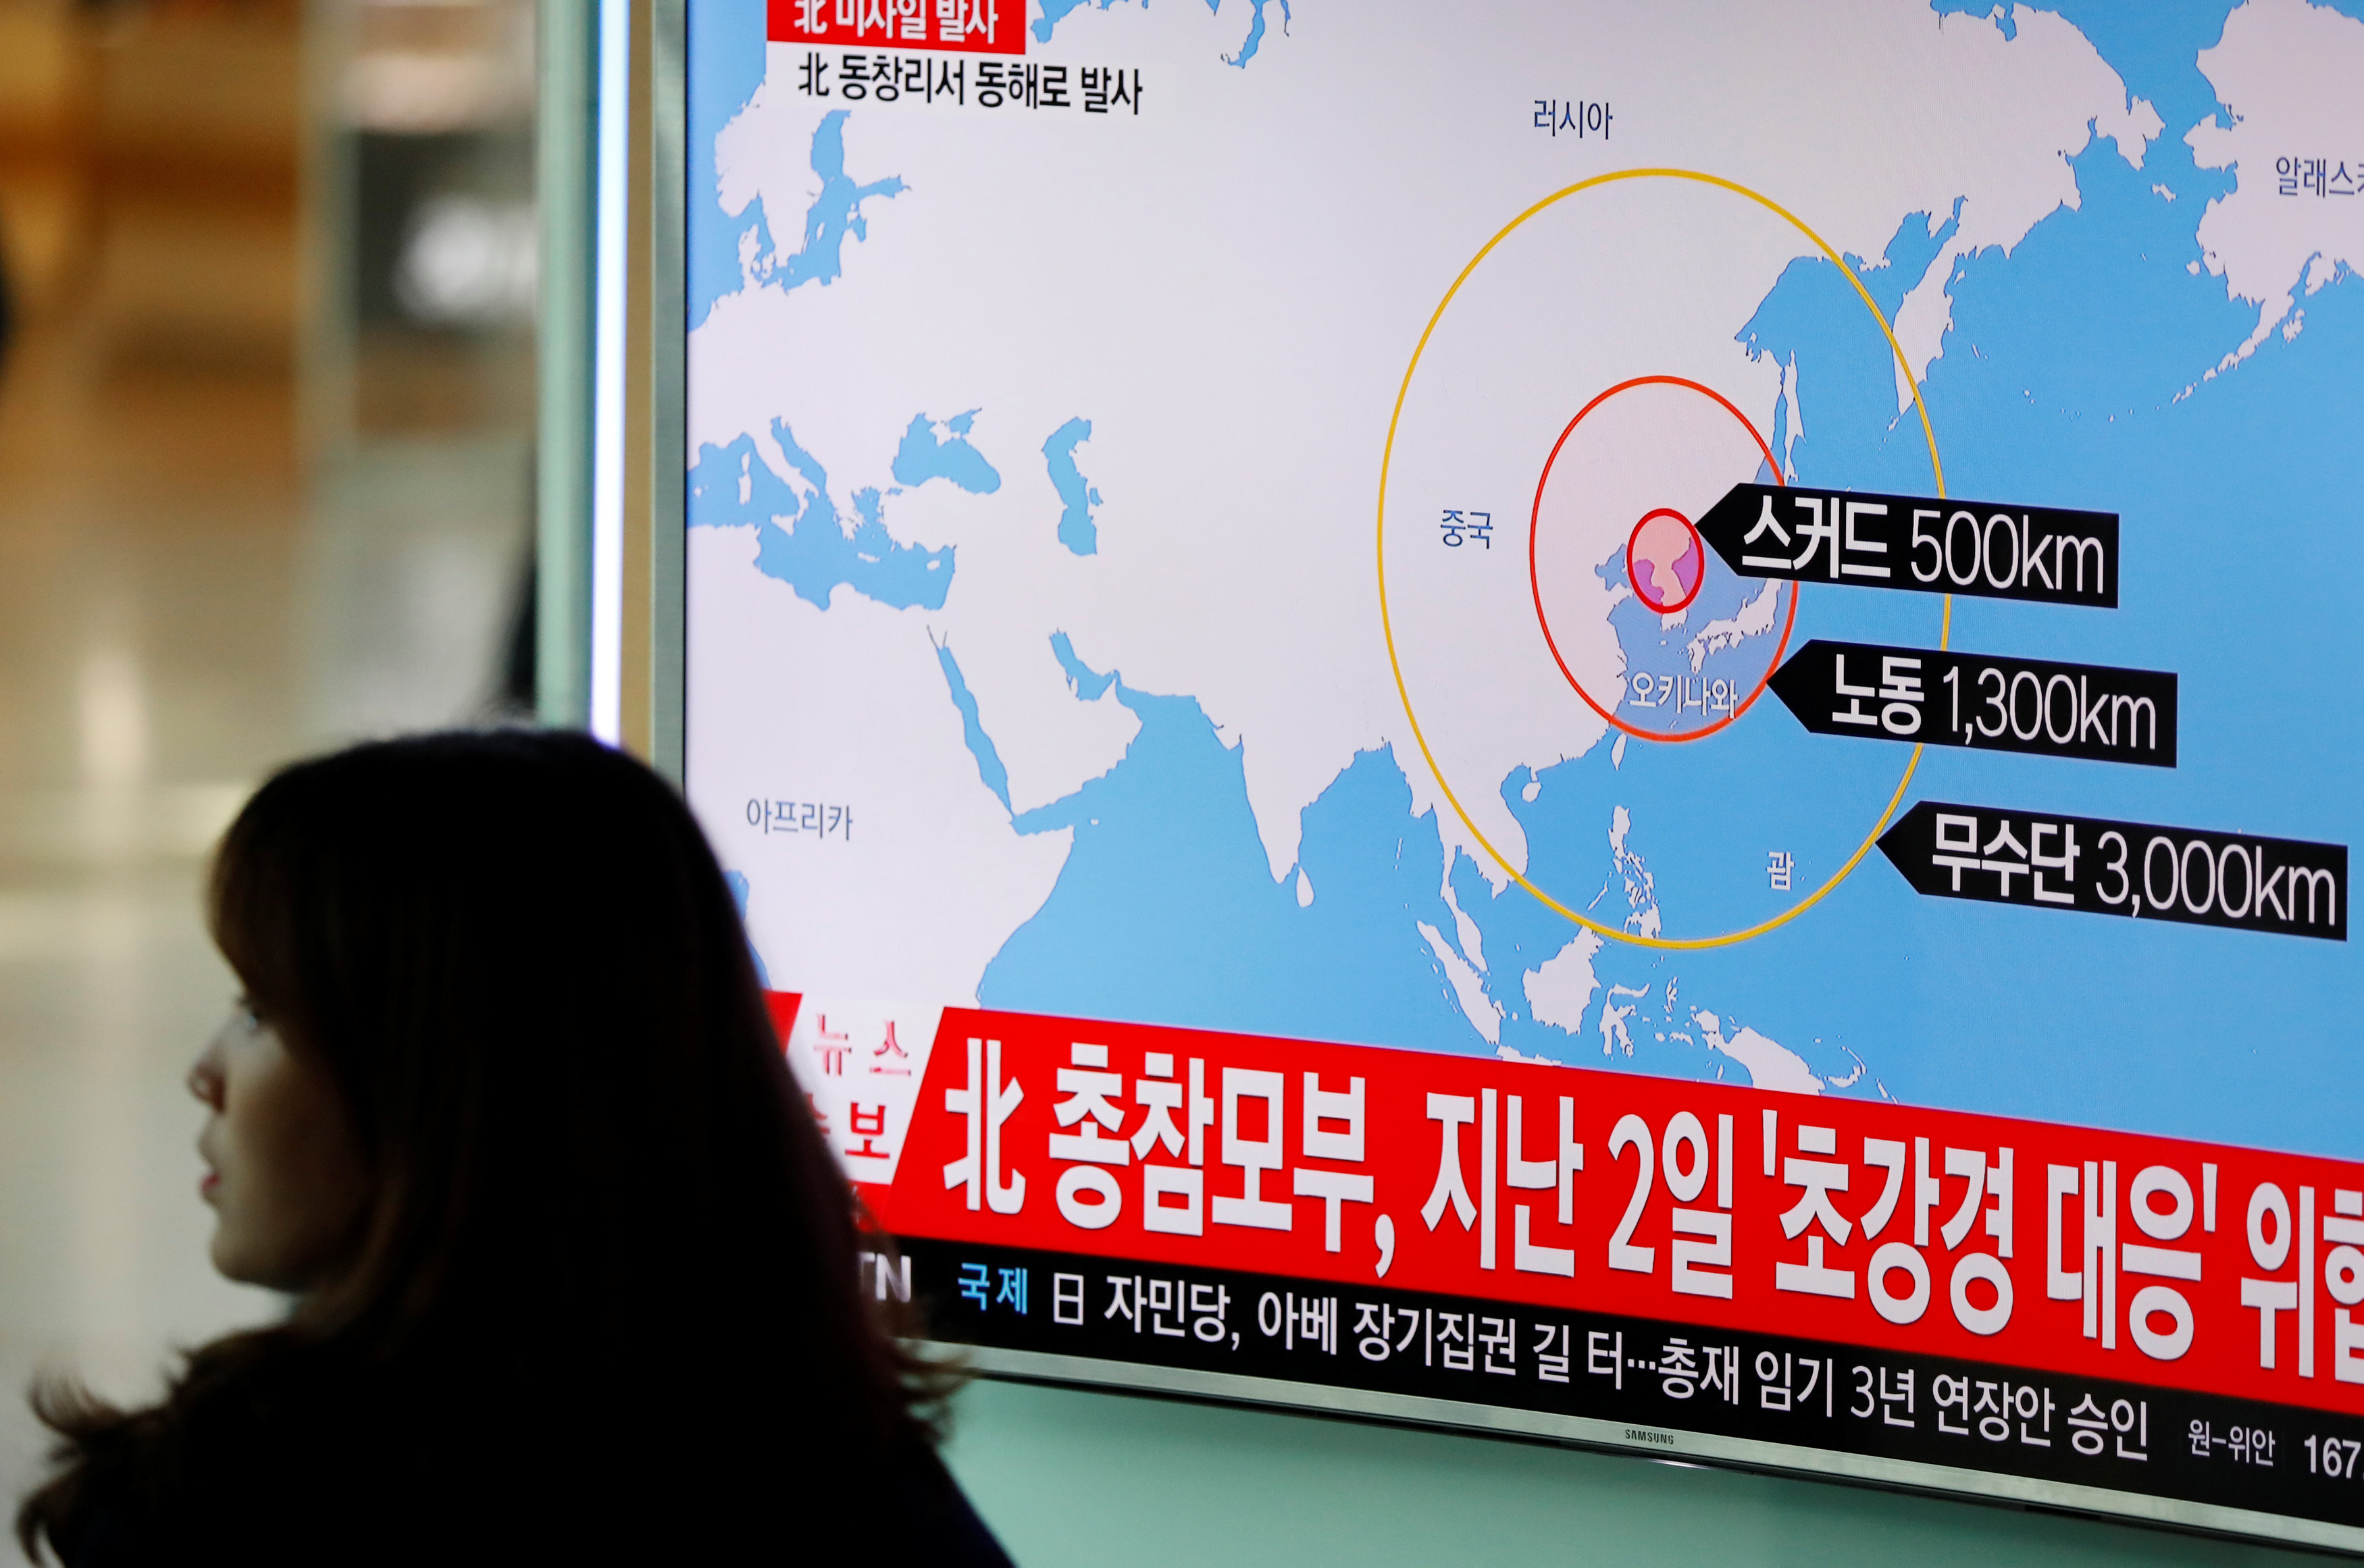 A woman walks past a television broadcasting a news report on North Korea firing ballistic missiles, at a railway station in Seoul, South Korea,